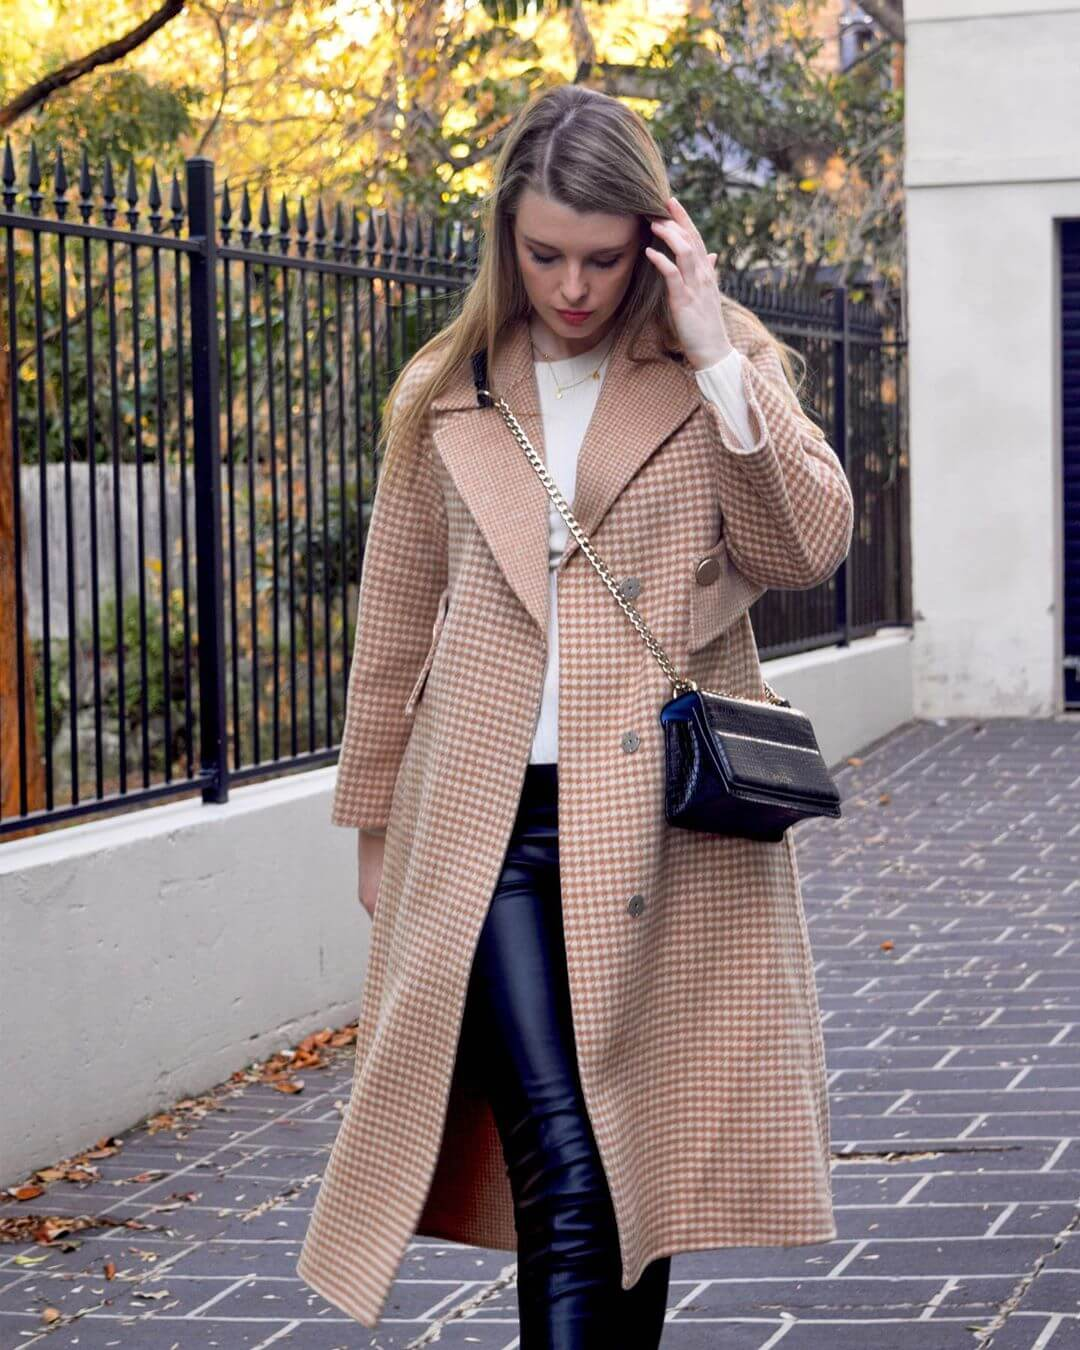 Wearing Leather Pants with Over Coats